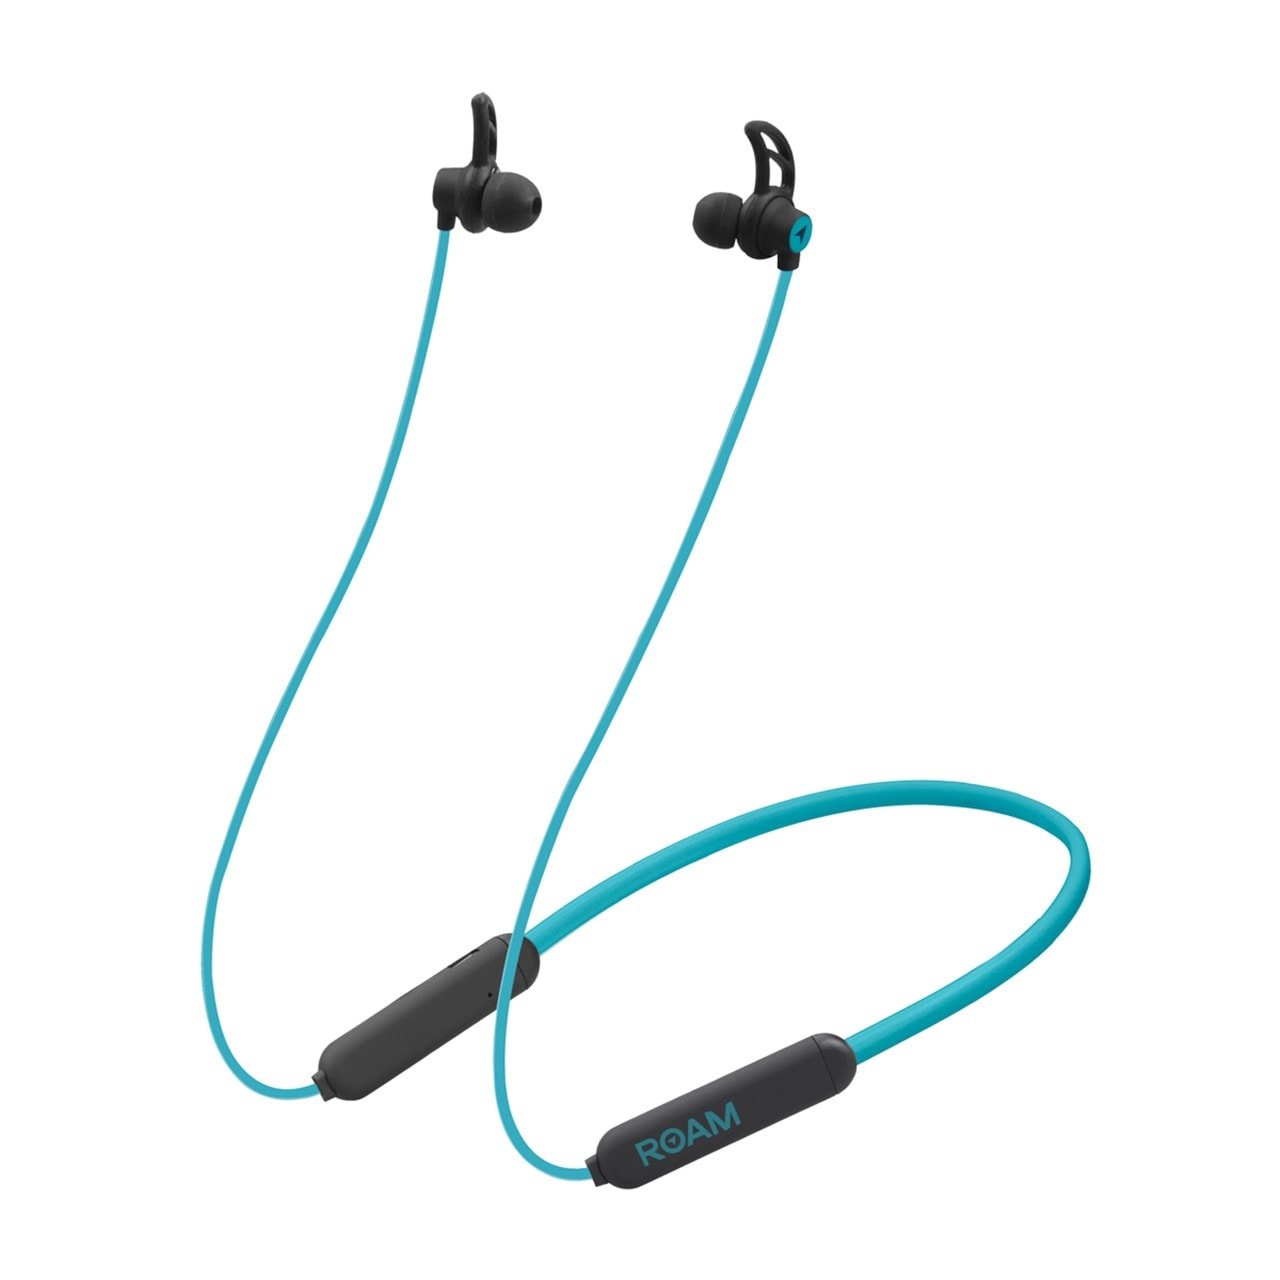 Roam Sports Pro Teal Bluetooth Earphones - 1